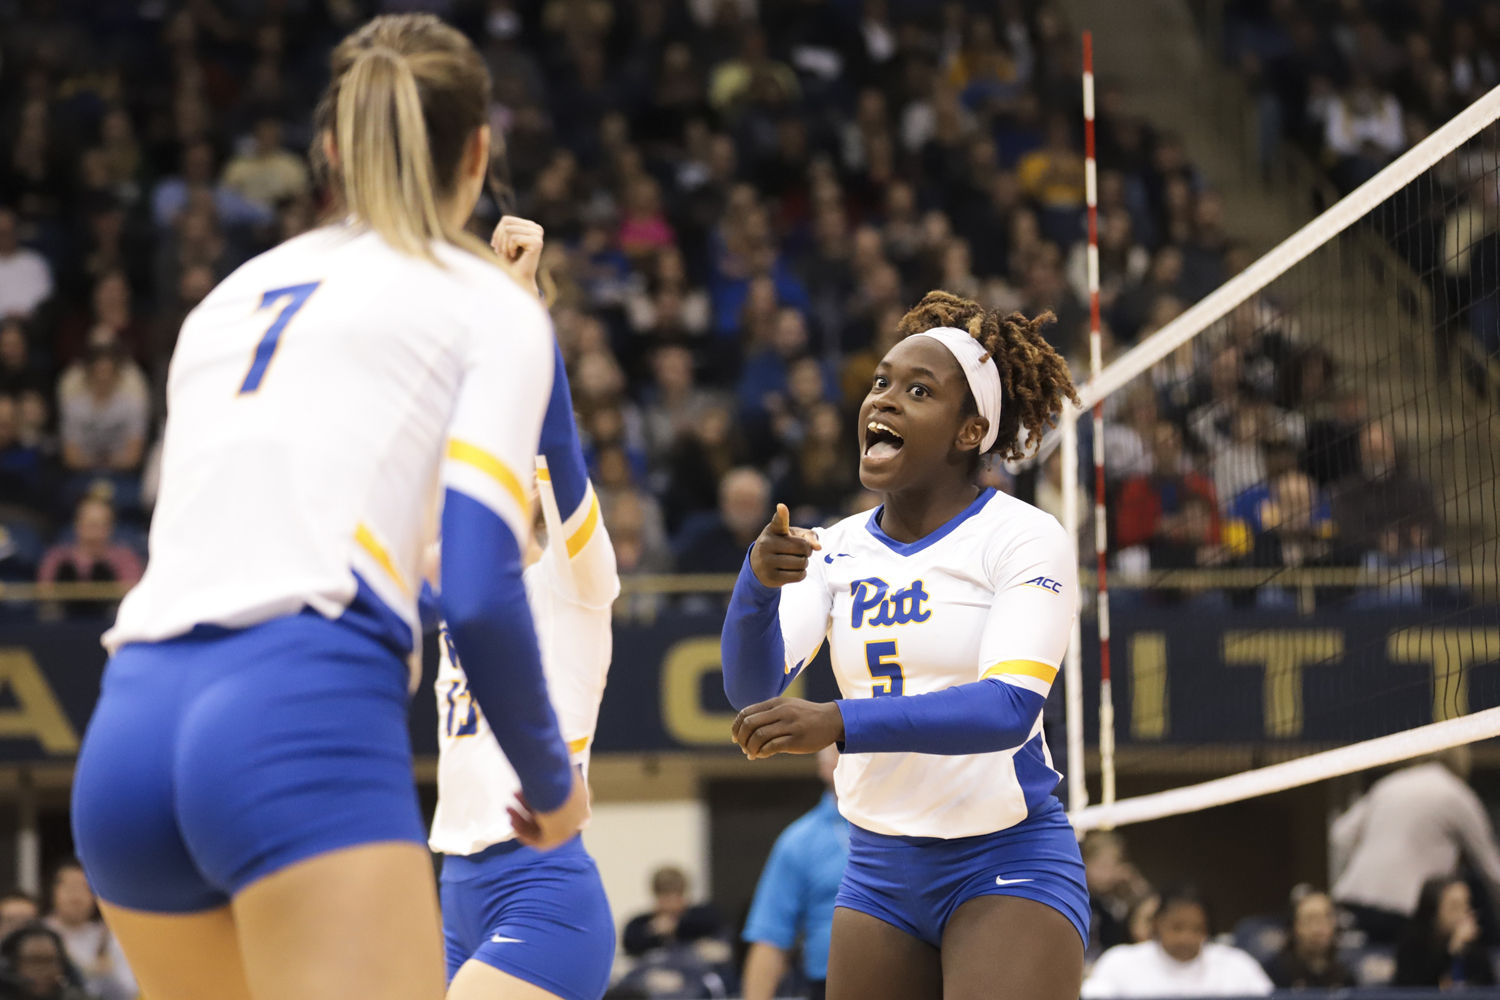 Sophomore Chinaza Ndee celebrates during the Panthers' 3-0 victory over Georgia Tech on Wednesday.